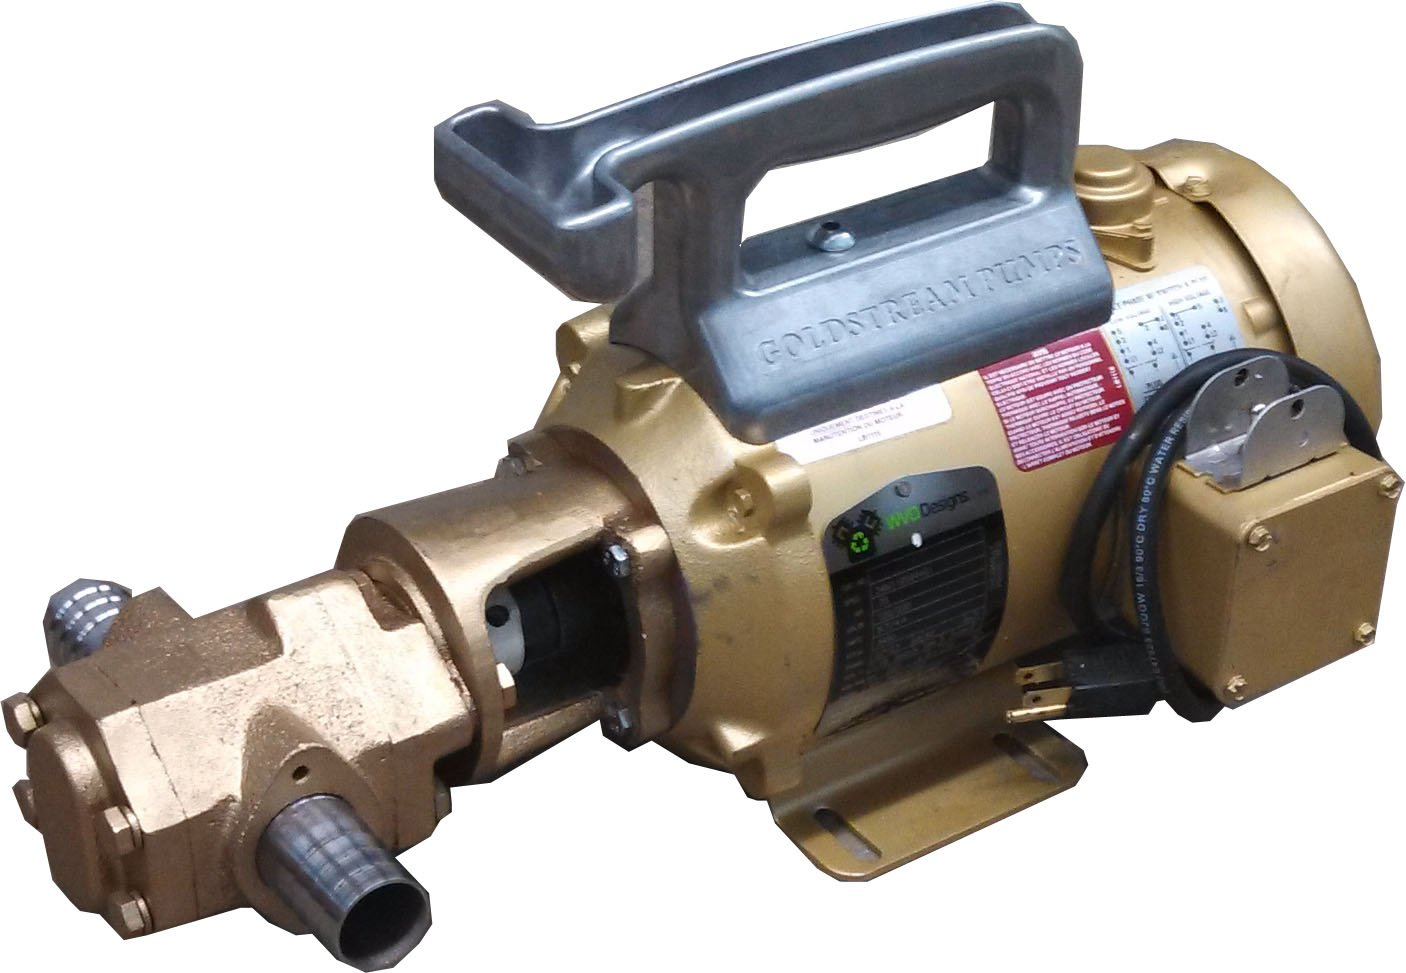 Goldstream Pumps 25gpm Portable Oil Pump by Goldstream Pumps (Image #1)